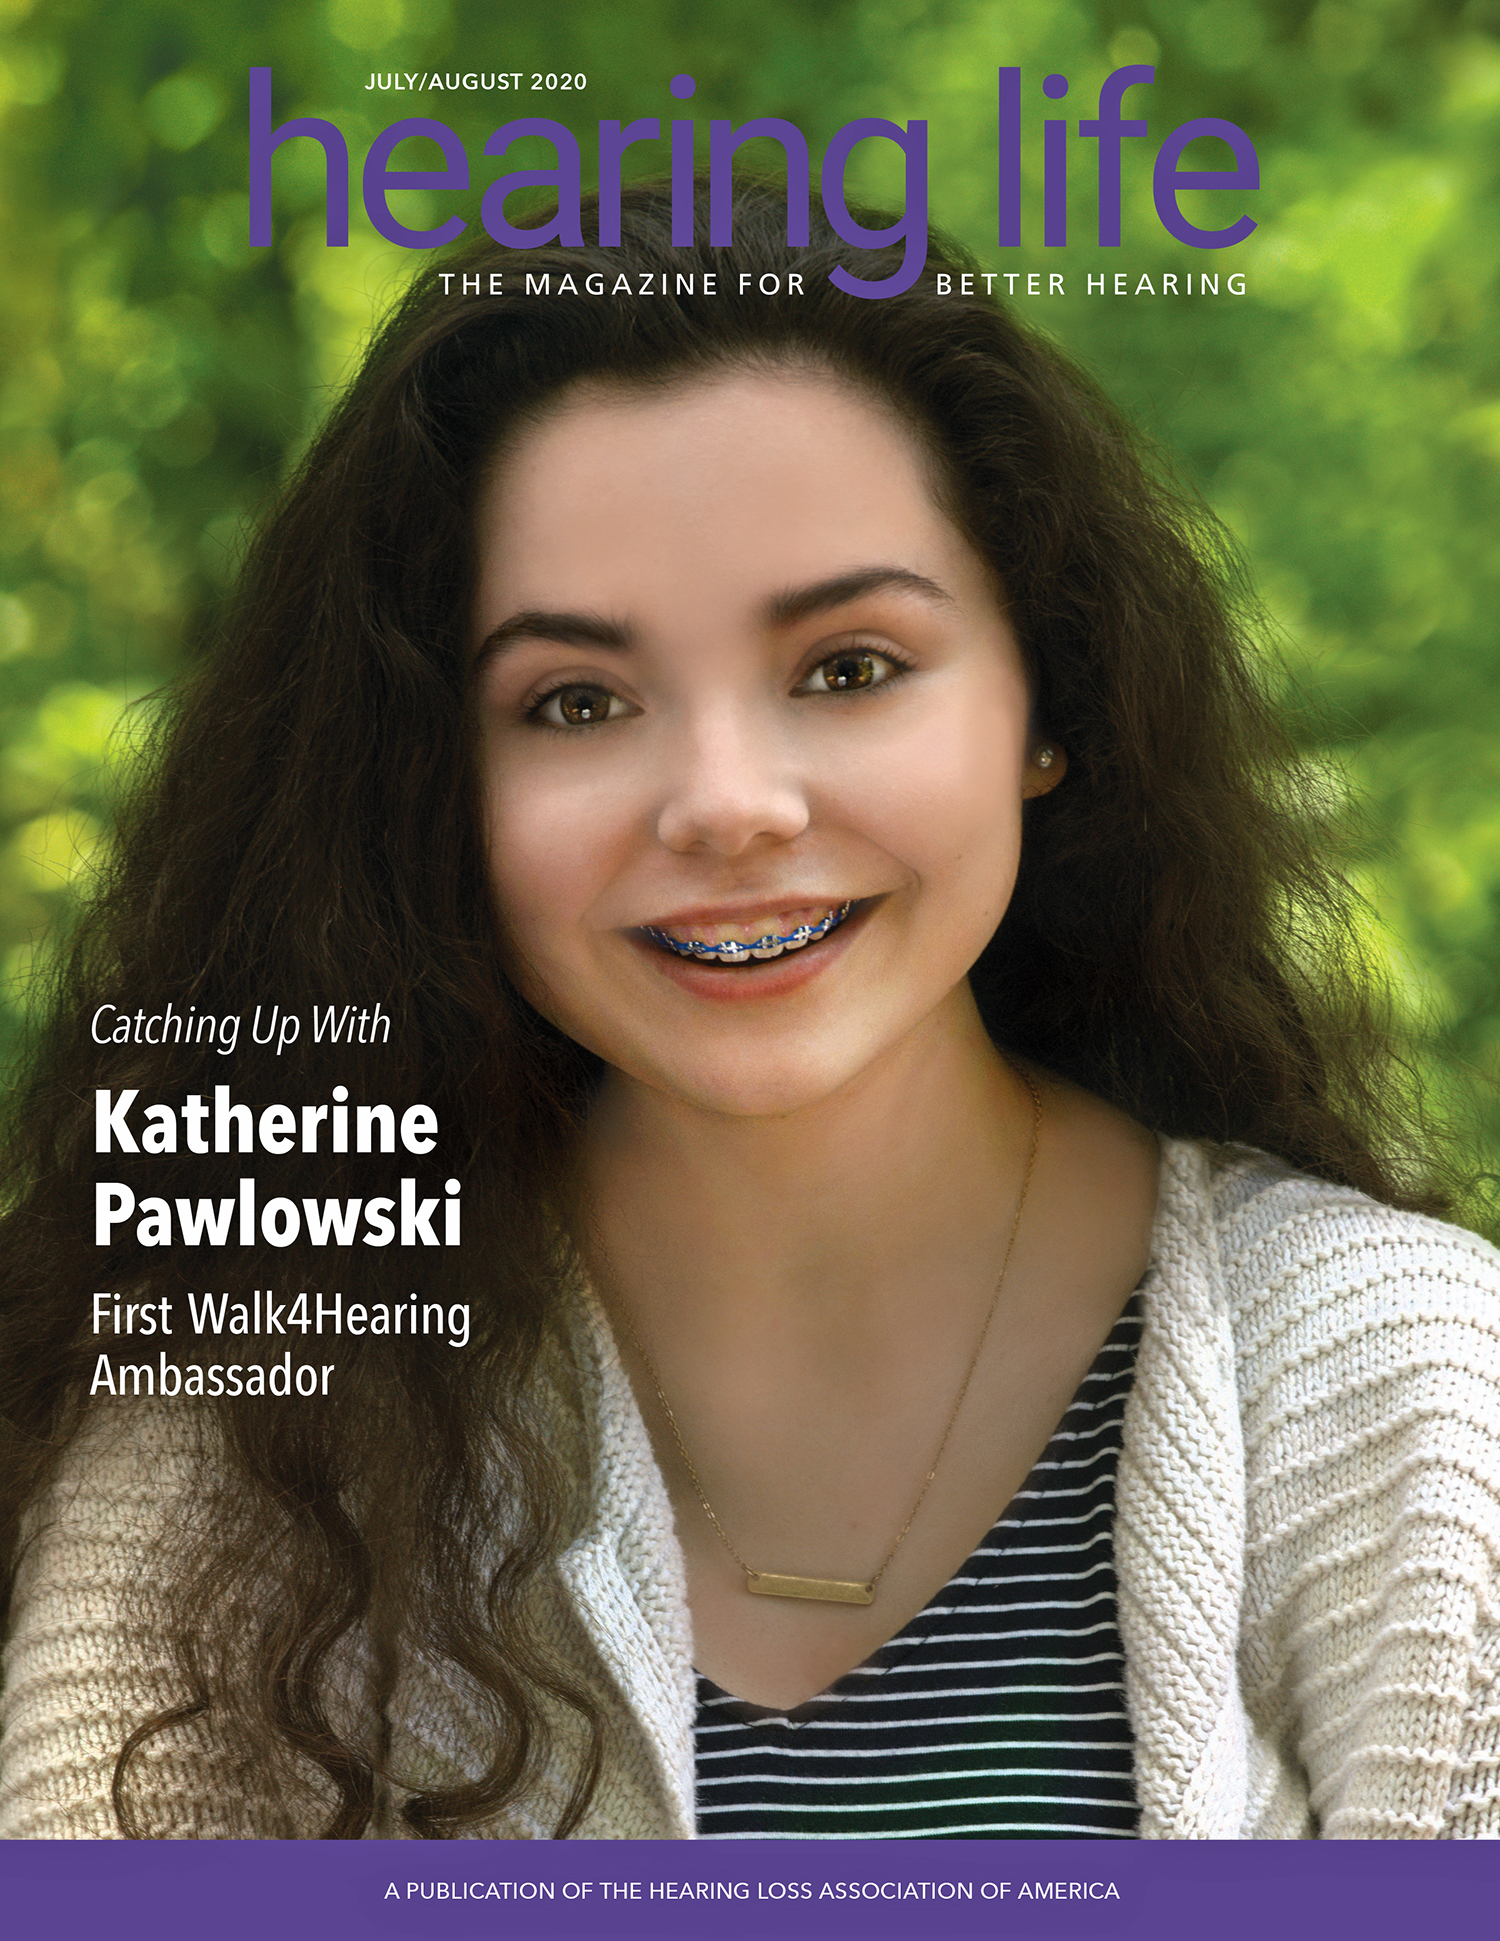 HLAA Hearing Life 2020 July/August Cover with Katherine Pawlowski.